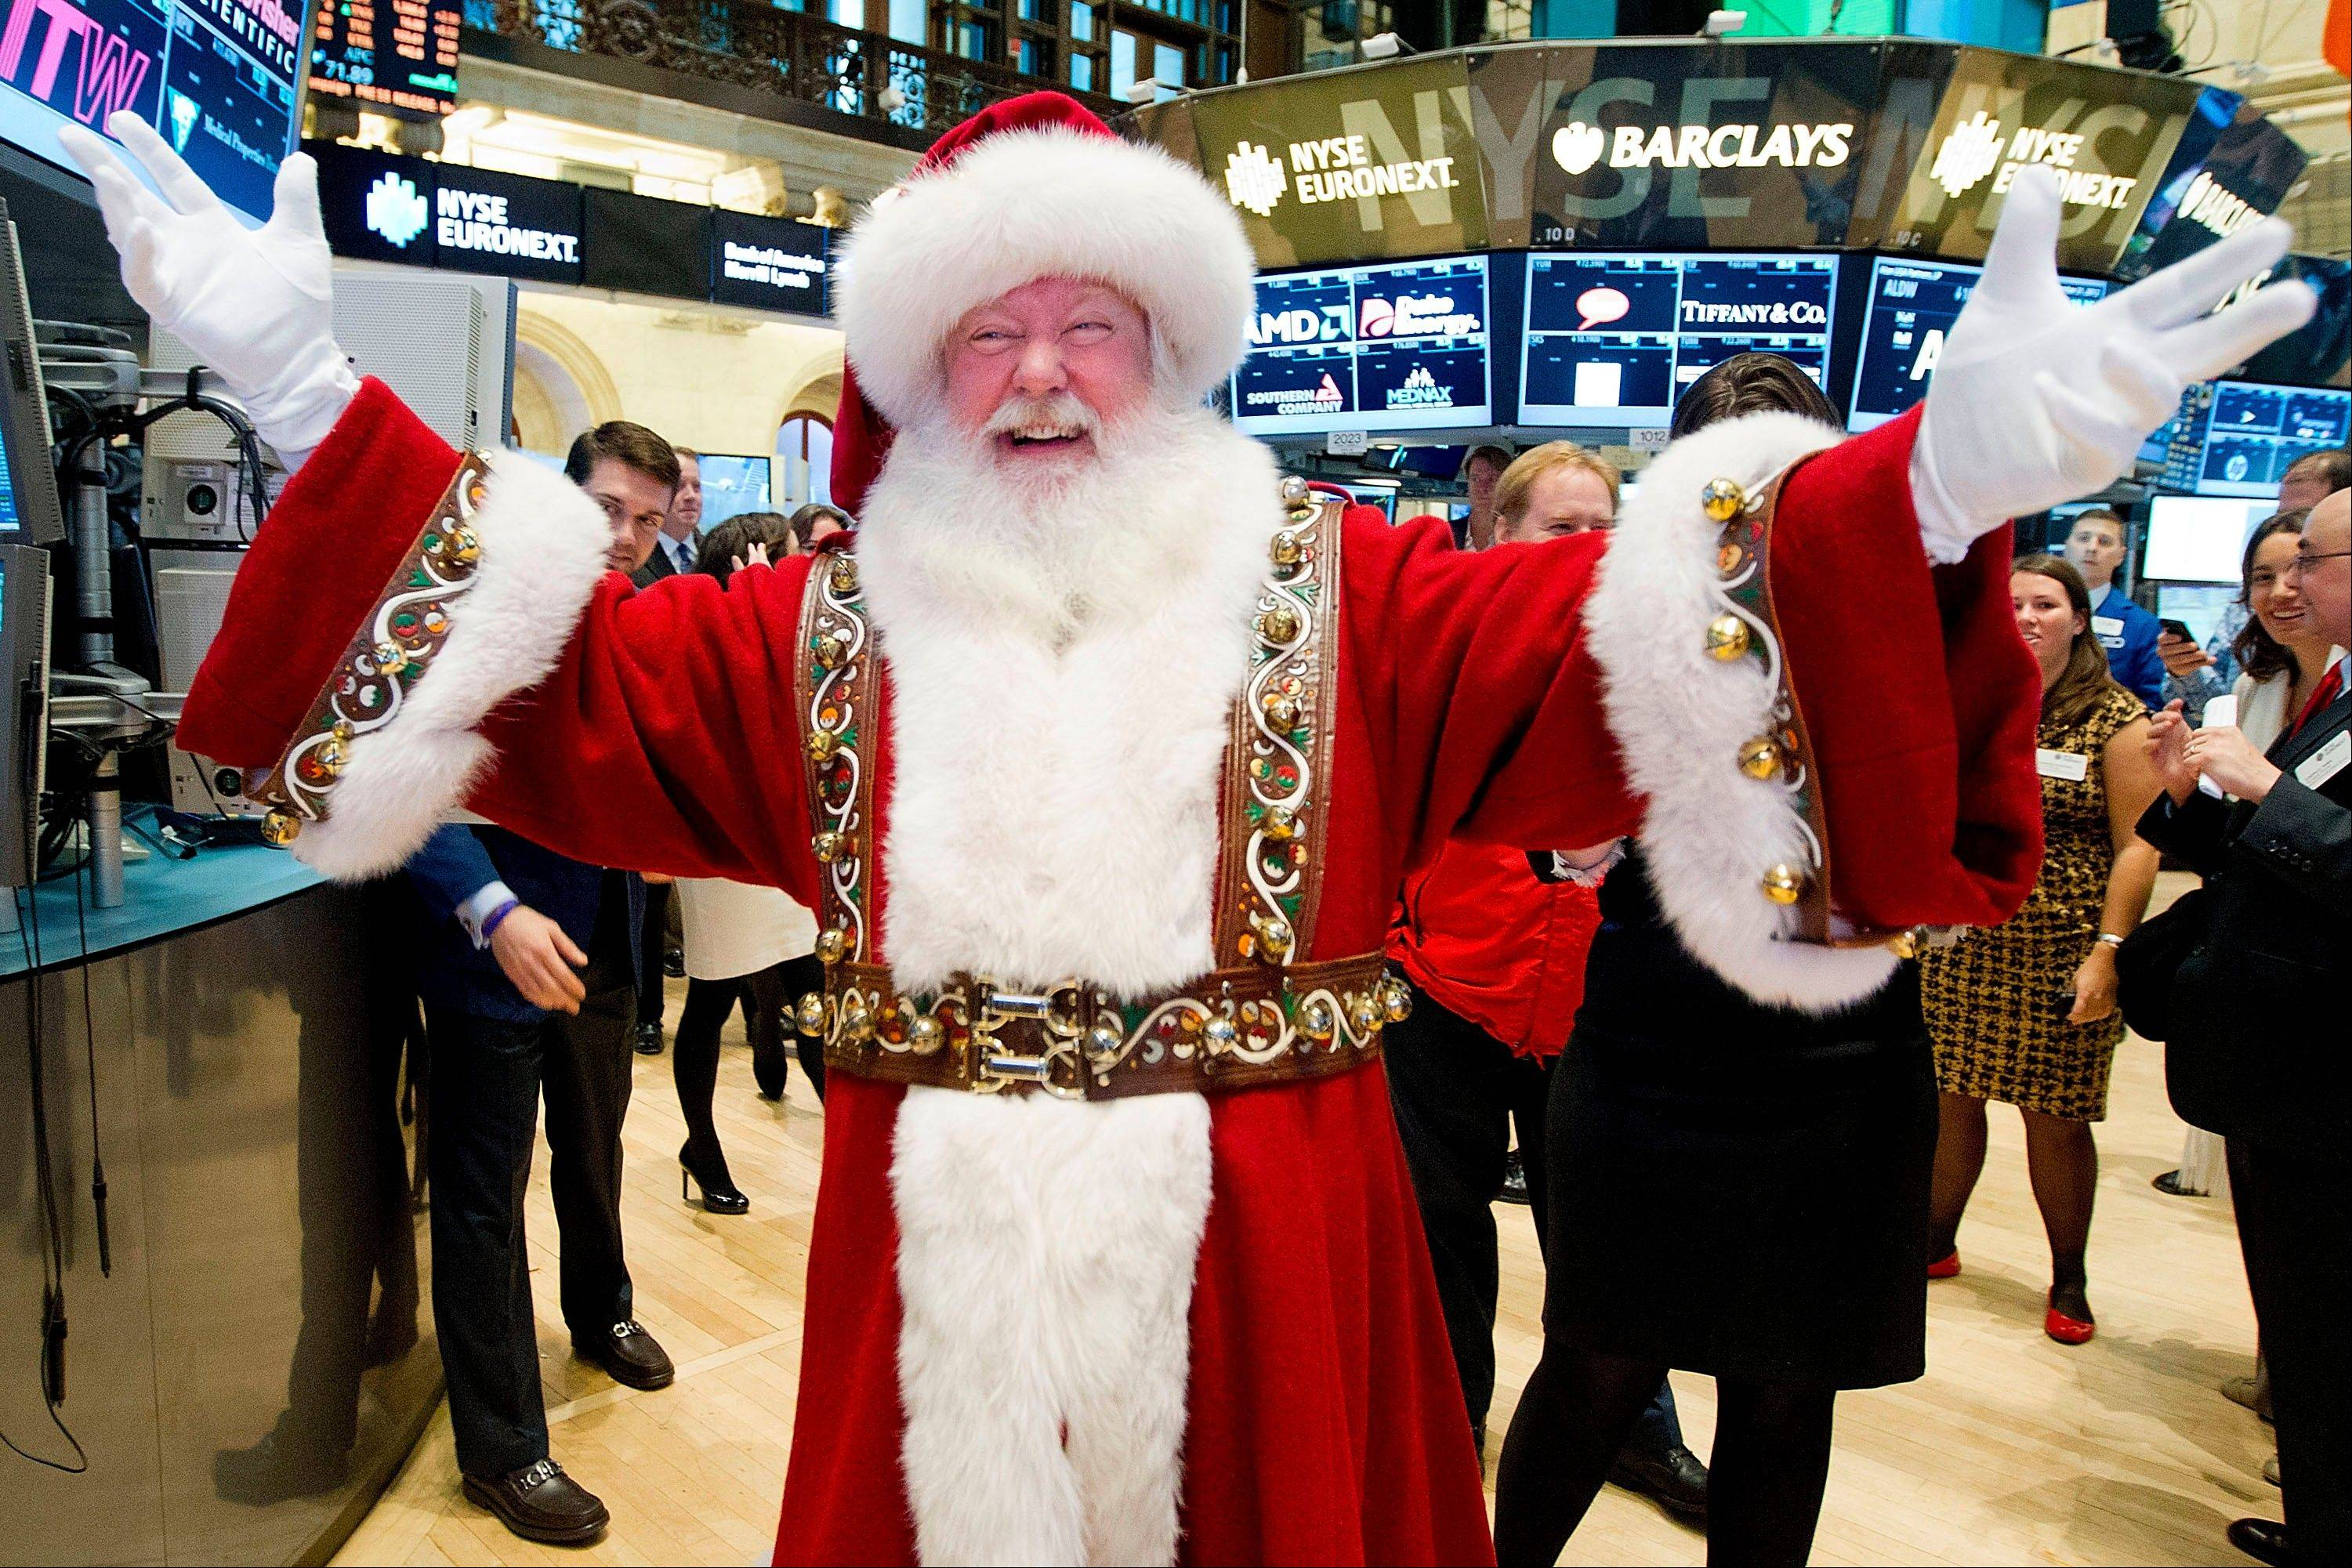 A man portraying Santa Claus visits the trading floor of the New York Stock Exchange before he participated in opening bell ceremonies featuring the Macy�s Thanksgiving Day Parade.